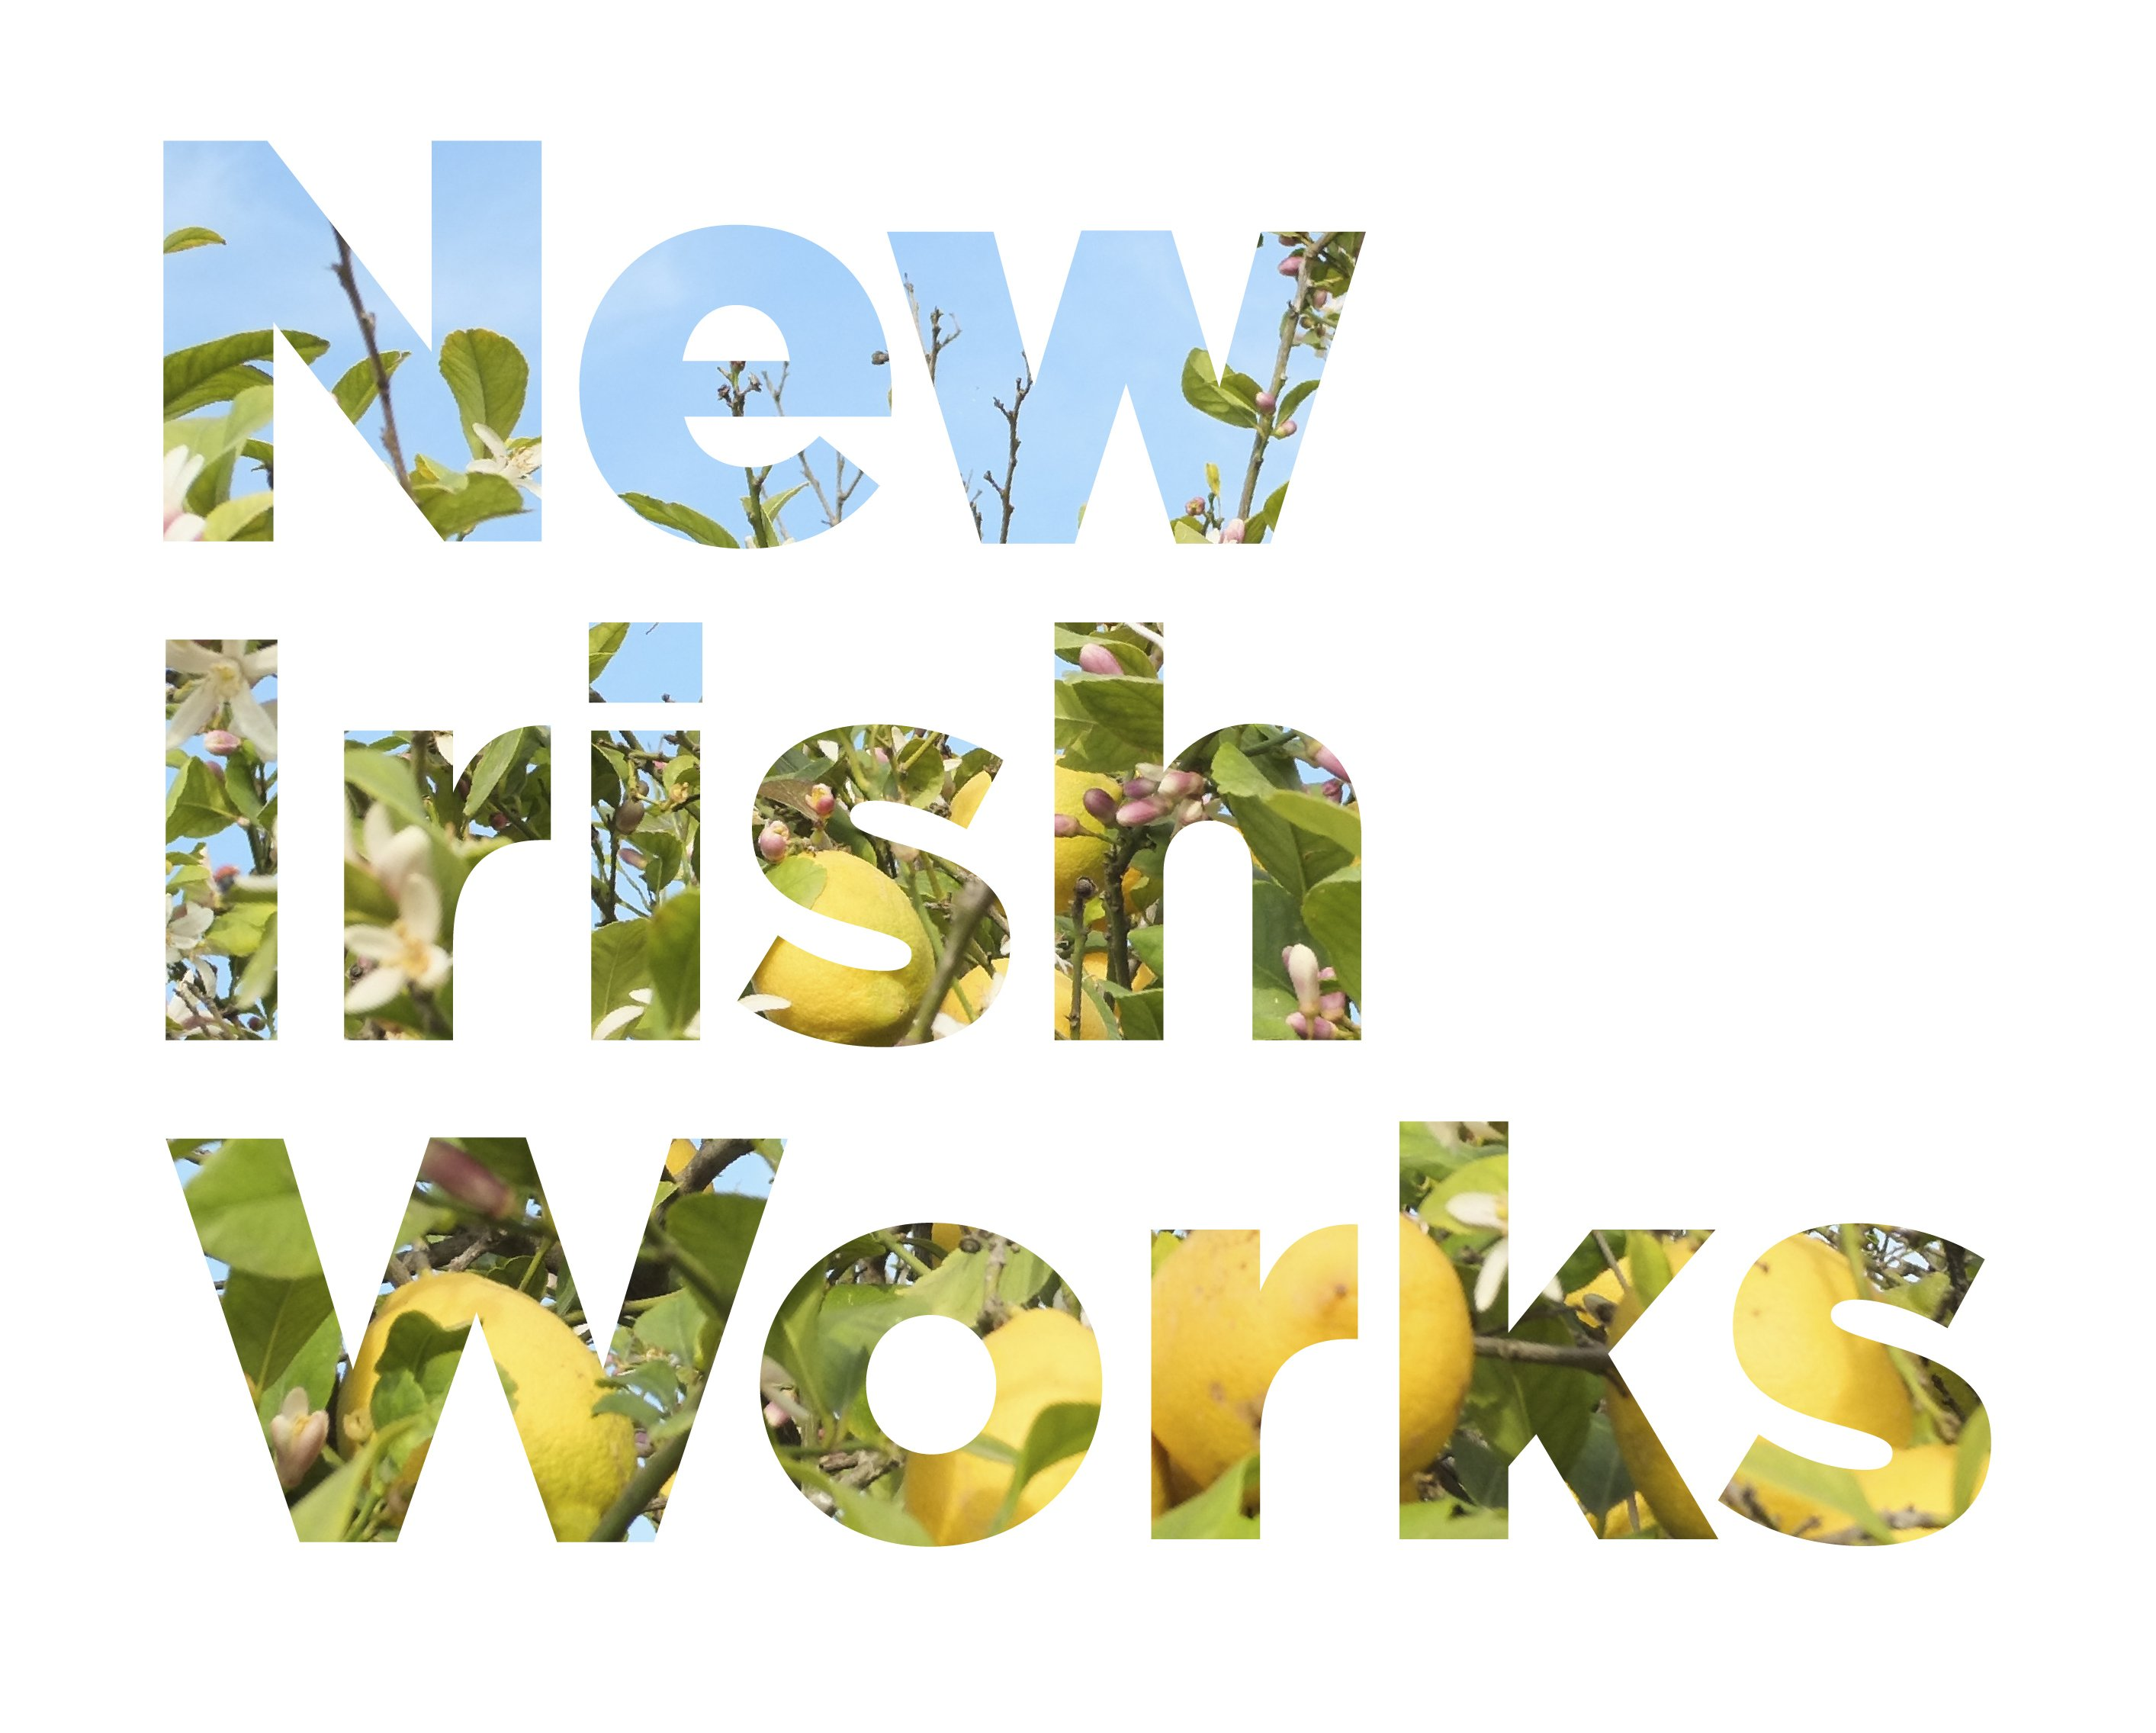 New Irish Works, The Library Project - headstuff.org